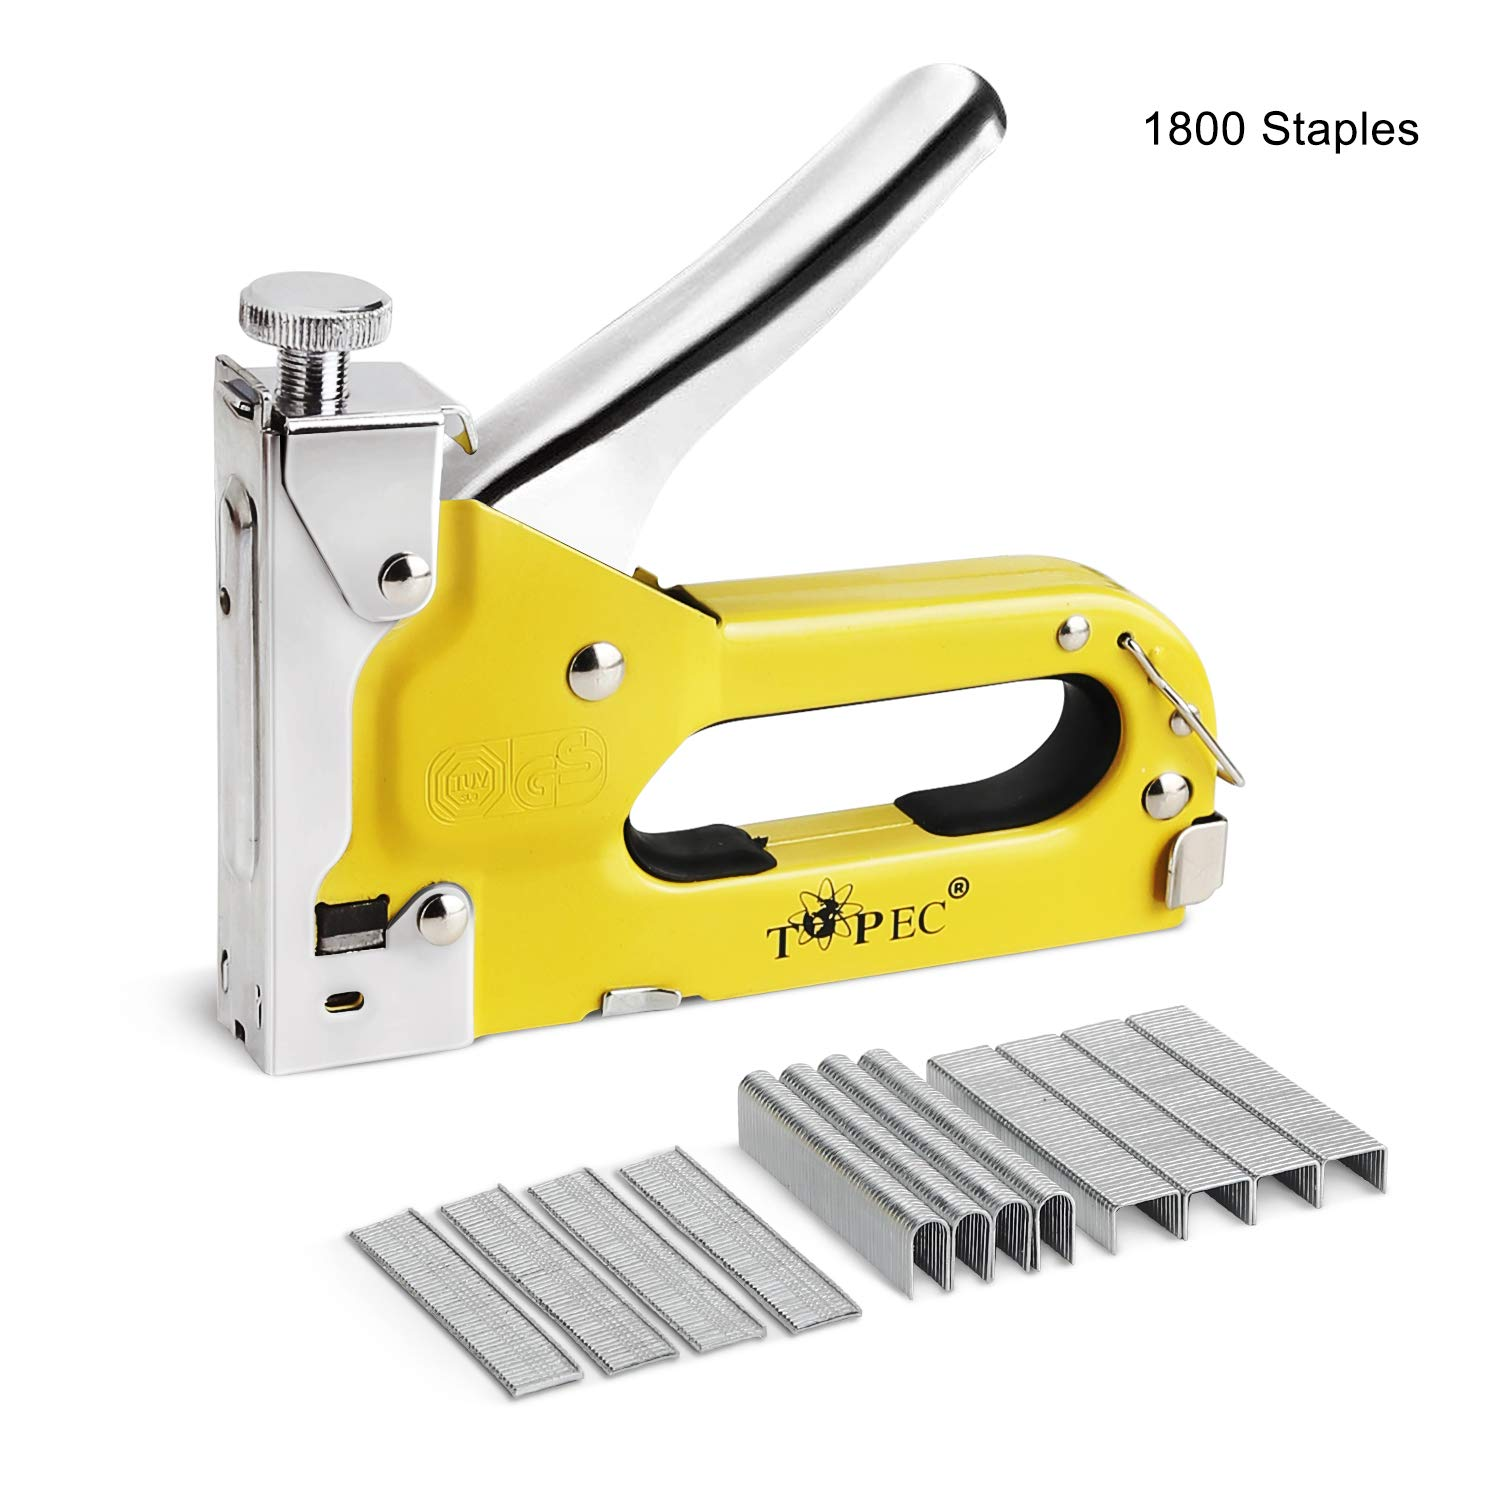 Staple Gun, 3 in 1 Heavy Duty Nailer Gun with 1800 Staples - Manual Gun for Upholstery, Fixing Material, Decoration, Carpentry, Furniture